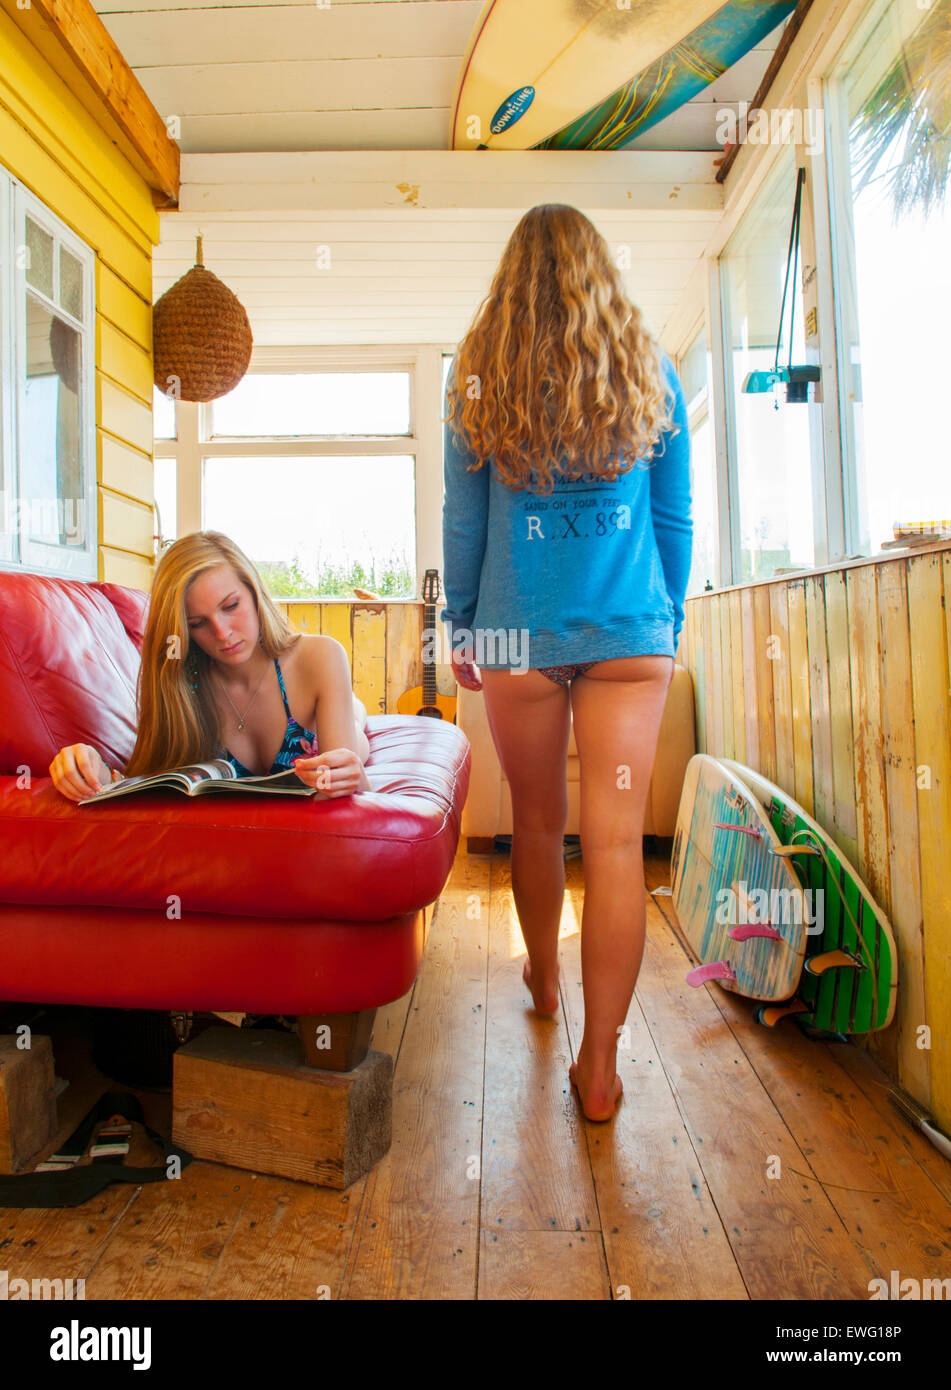 Surfer girls hanging out at a beach, on a hot summers day in Cornwall, UK. - Stock Image